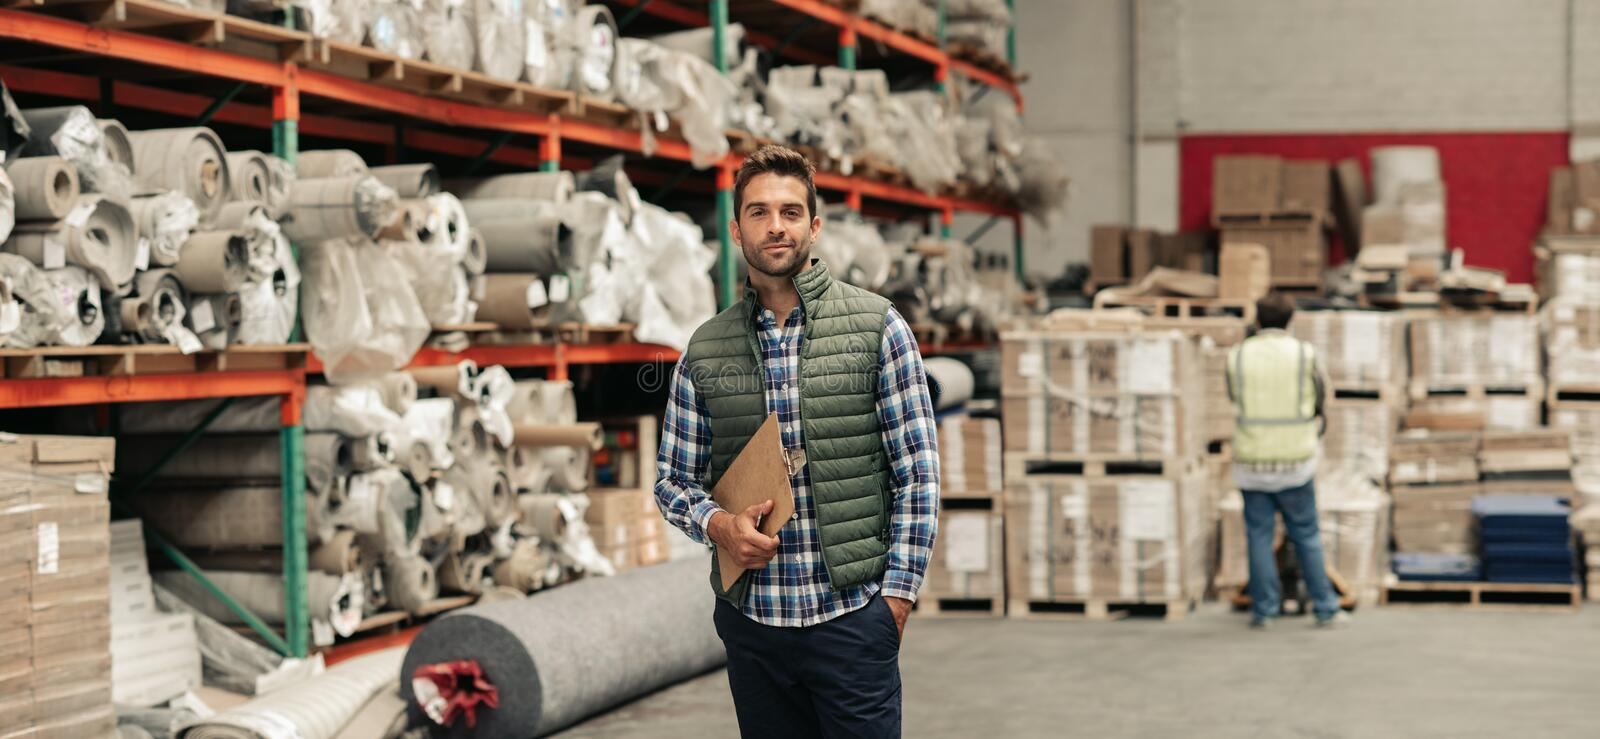 Worker standing with an inventory clipboard on a warehouse floor royalty free stock image